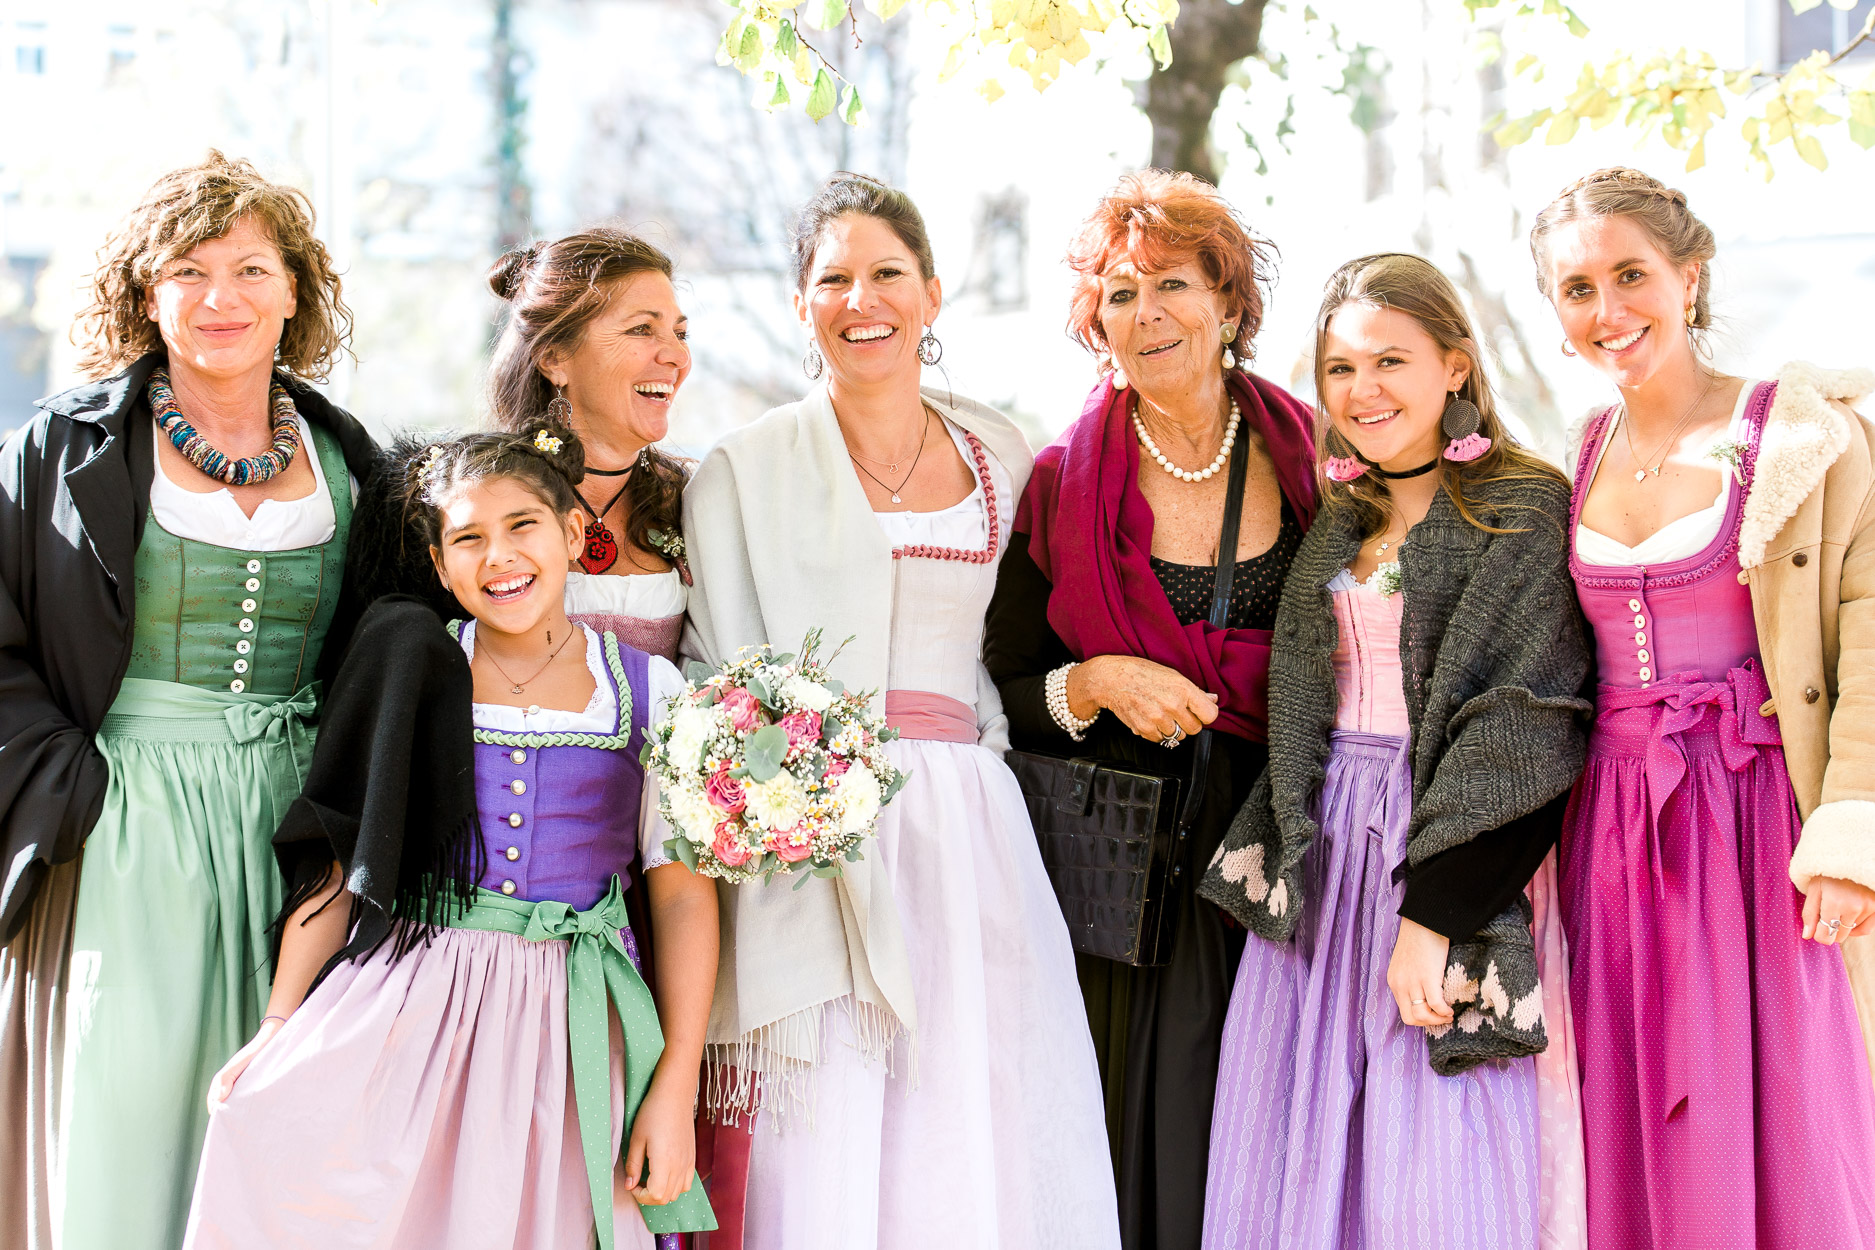 Wedding Photography Zell am See Austria